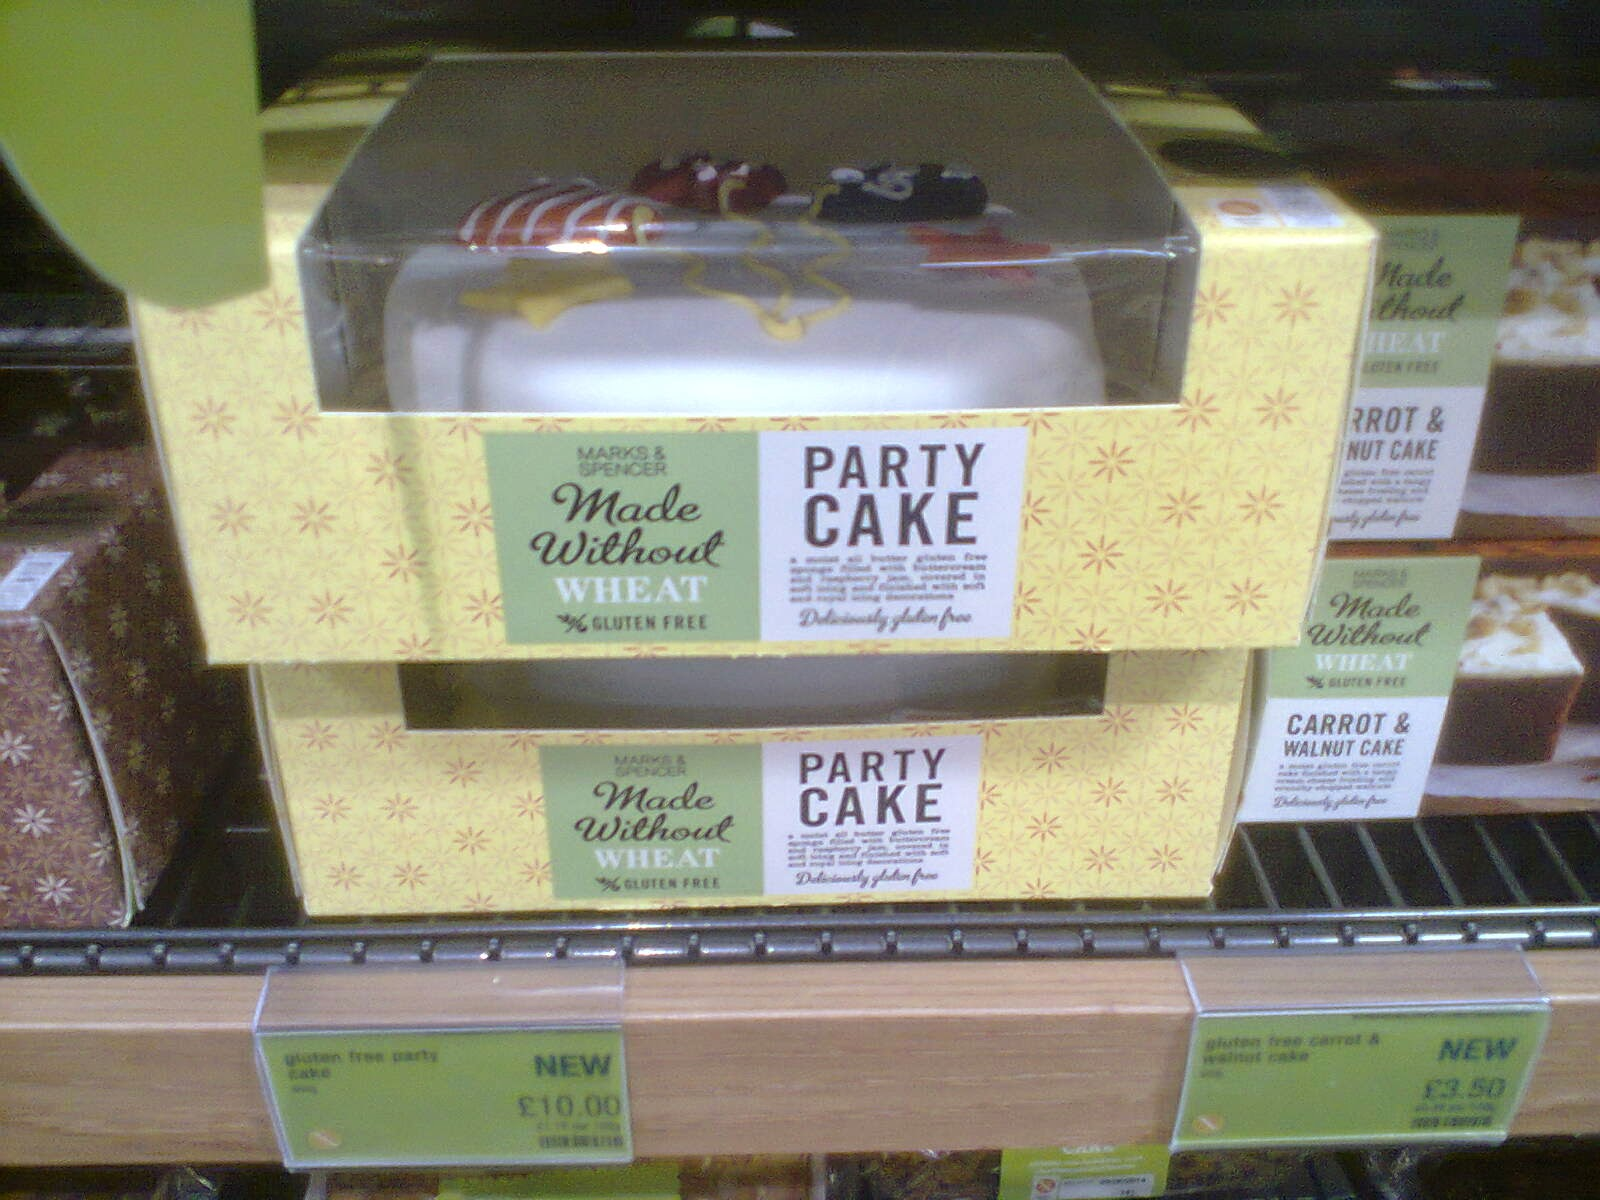 The Marks and Spencer Made Without Wheat 'Party Cake'. I hope I get one of these on my next birthday.